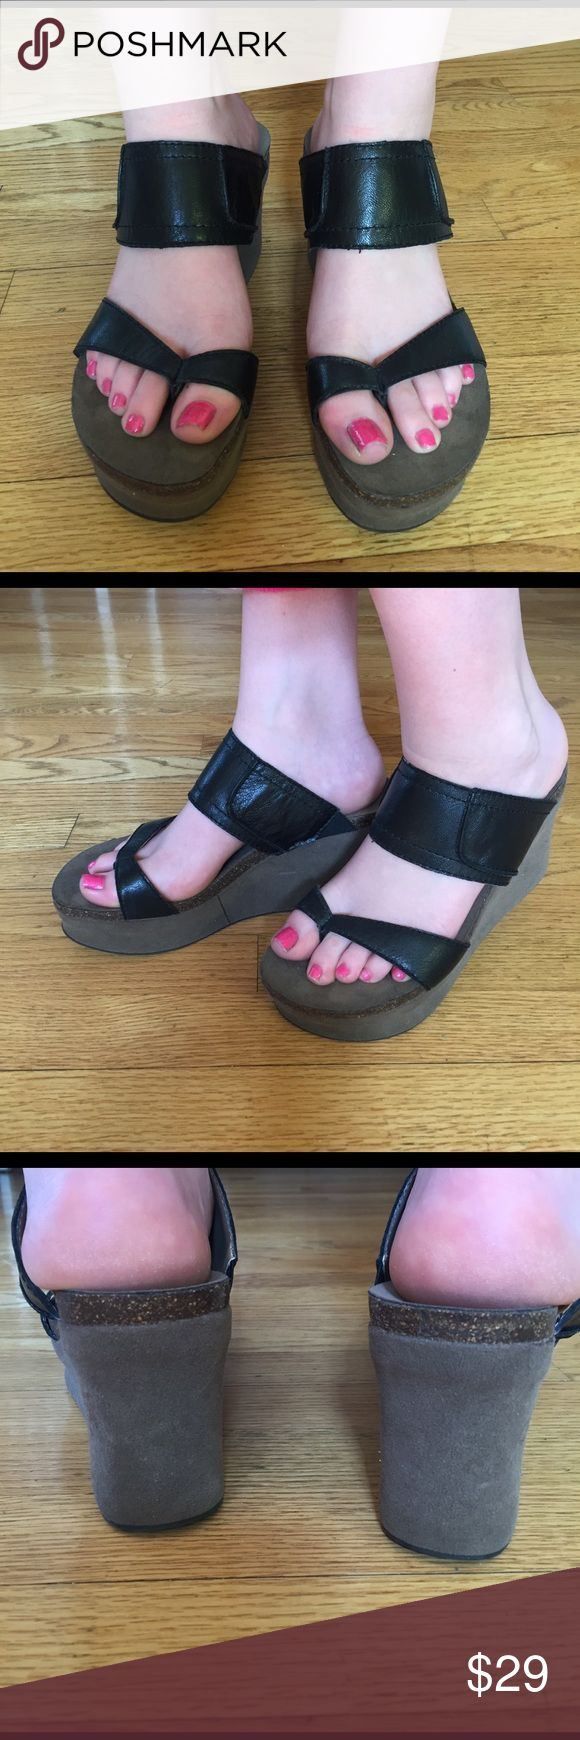 Super cute OTB sandals Hardly ever worn super versatile sandals: wear with jeans, a dress or shorts. You will love these! Shoes Sandals